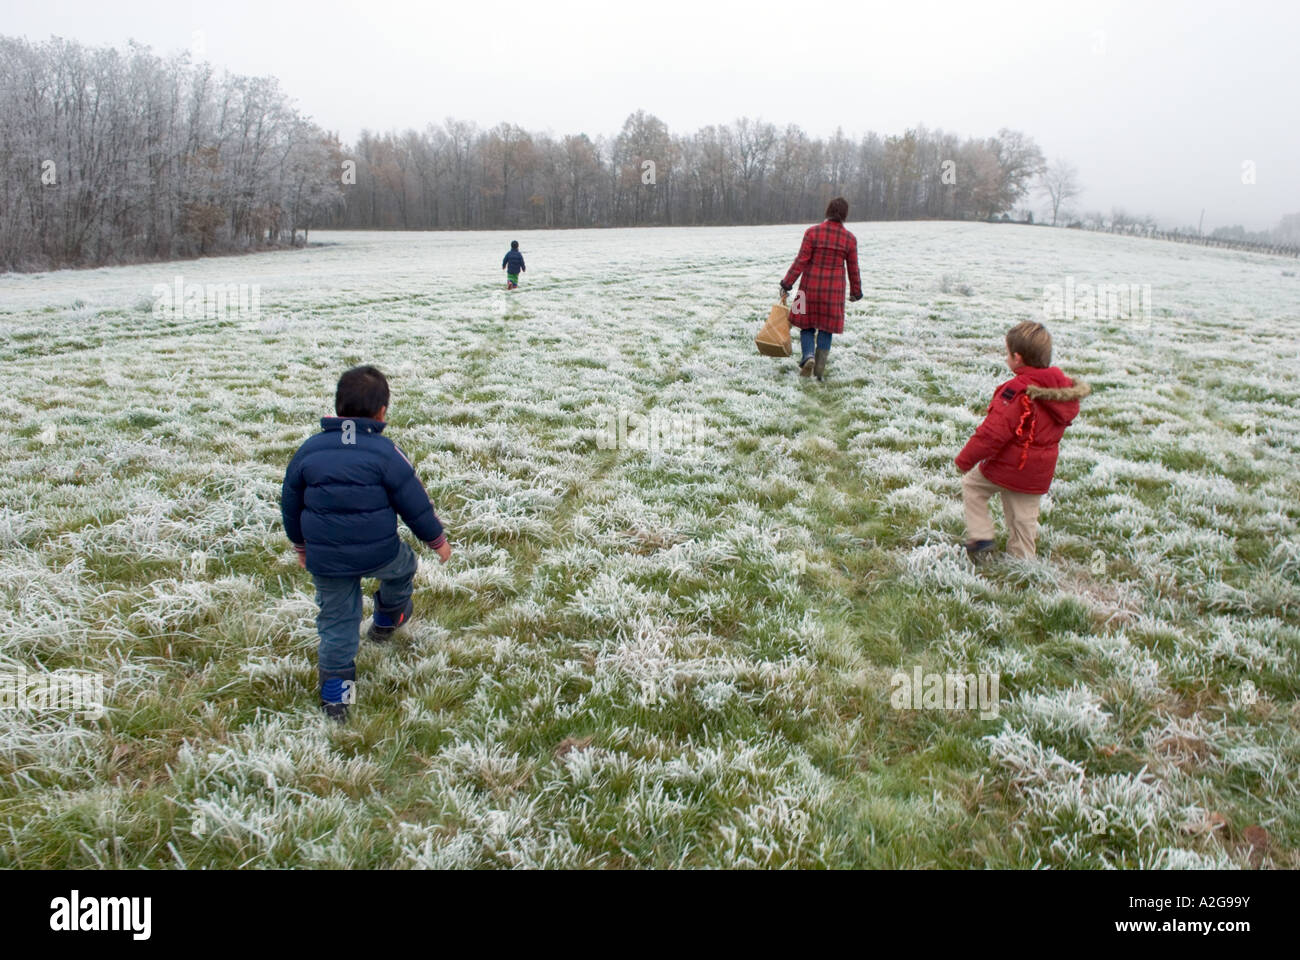 three young boys and their mum walk across a frost covered field away from camera - Stock Image